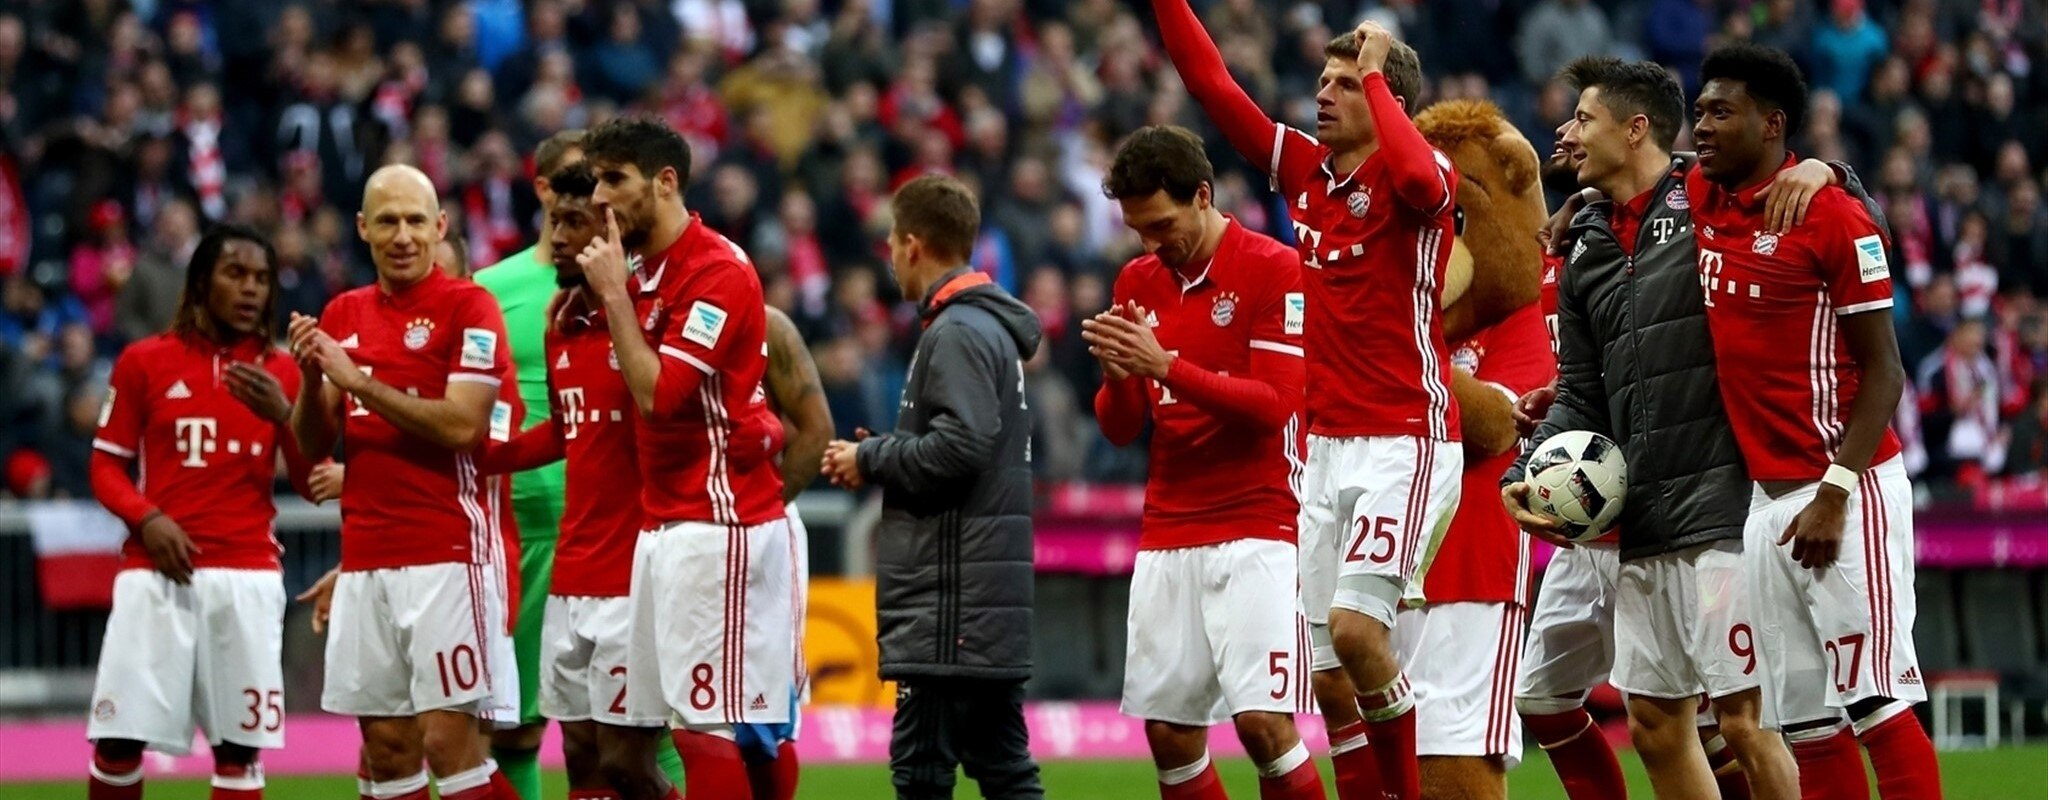 Bayern hit eight, Sevilla go second, nine wins for Juve